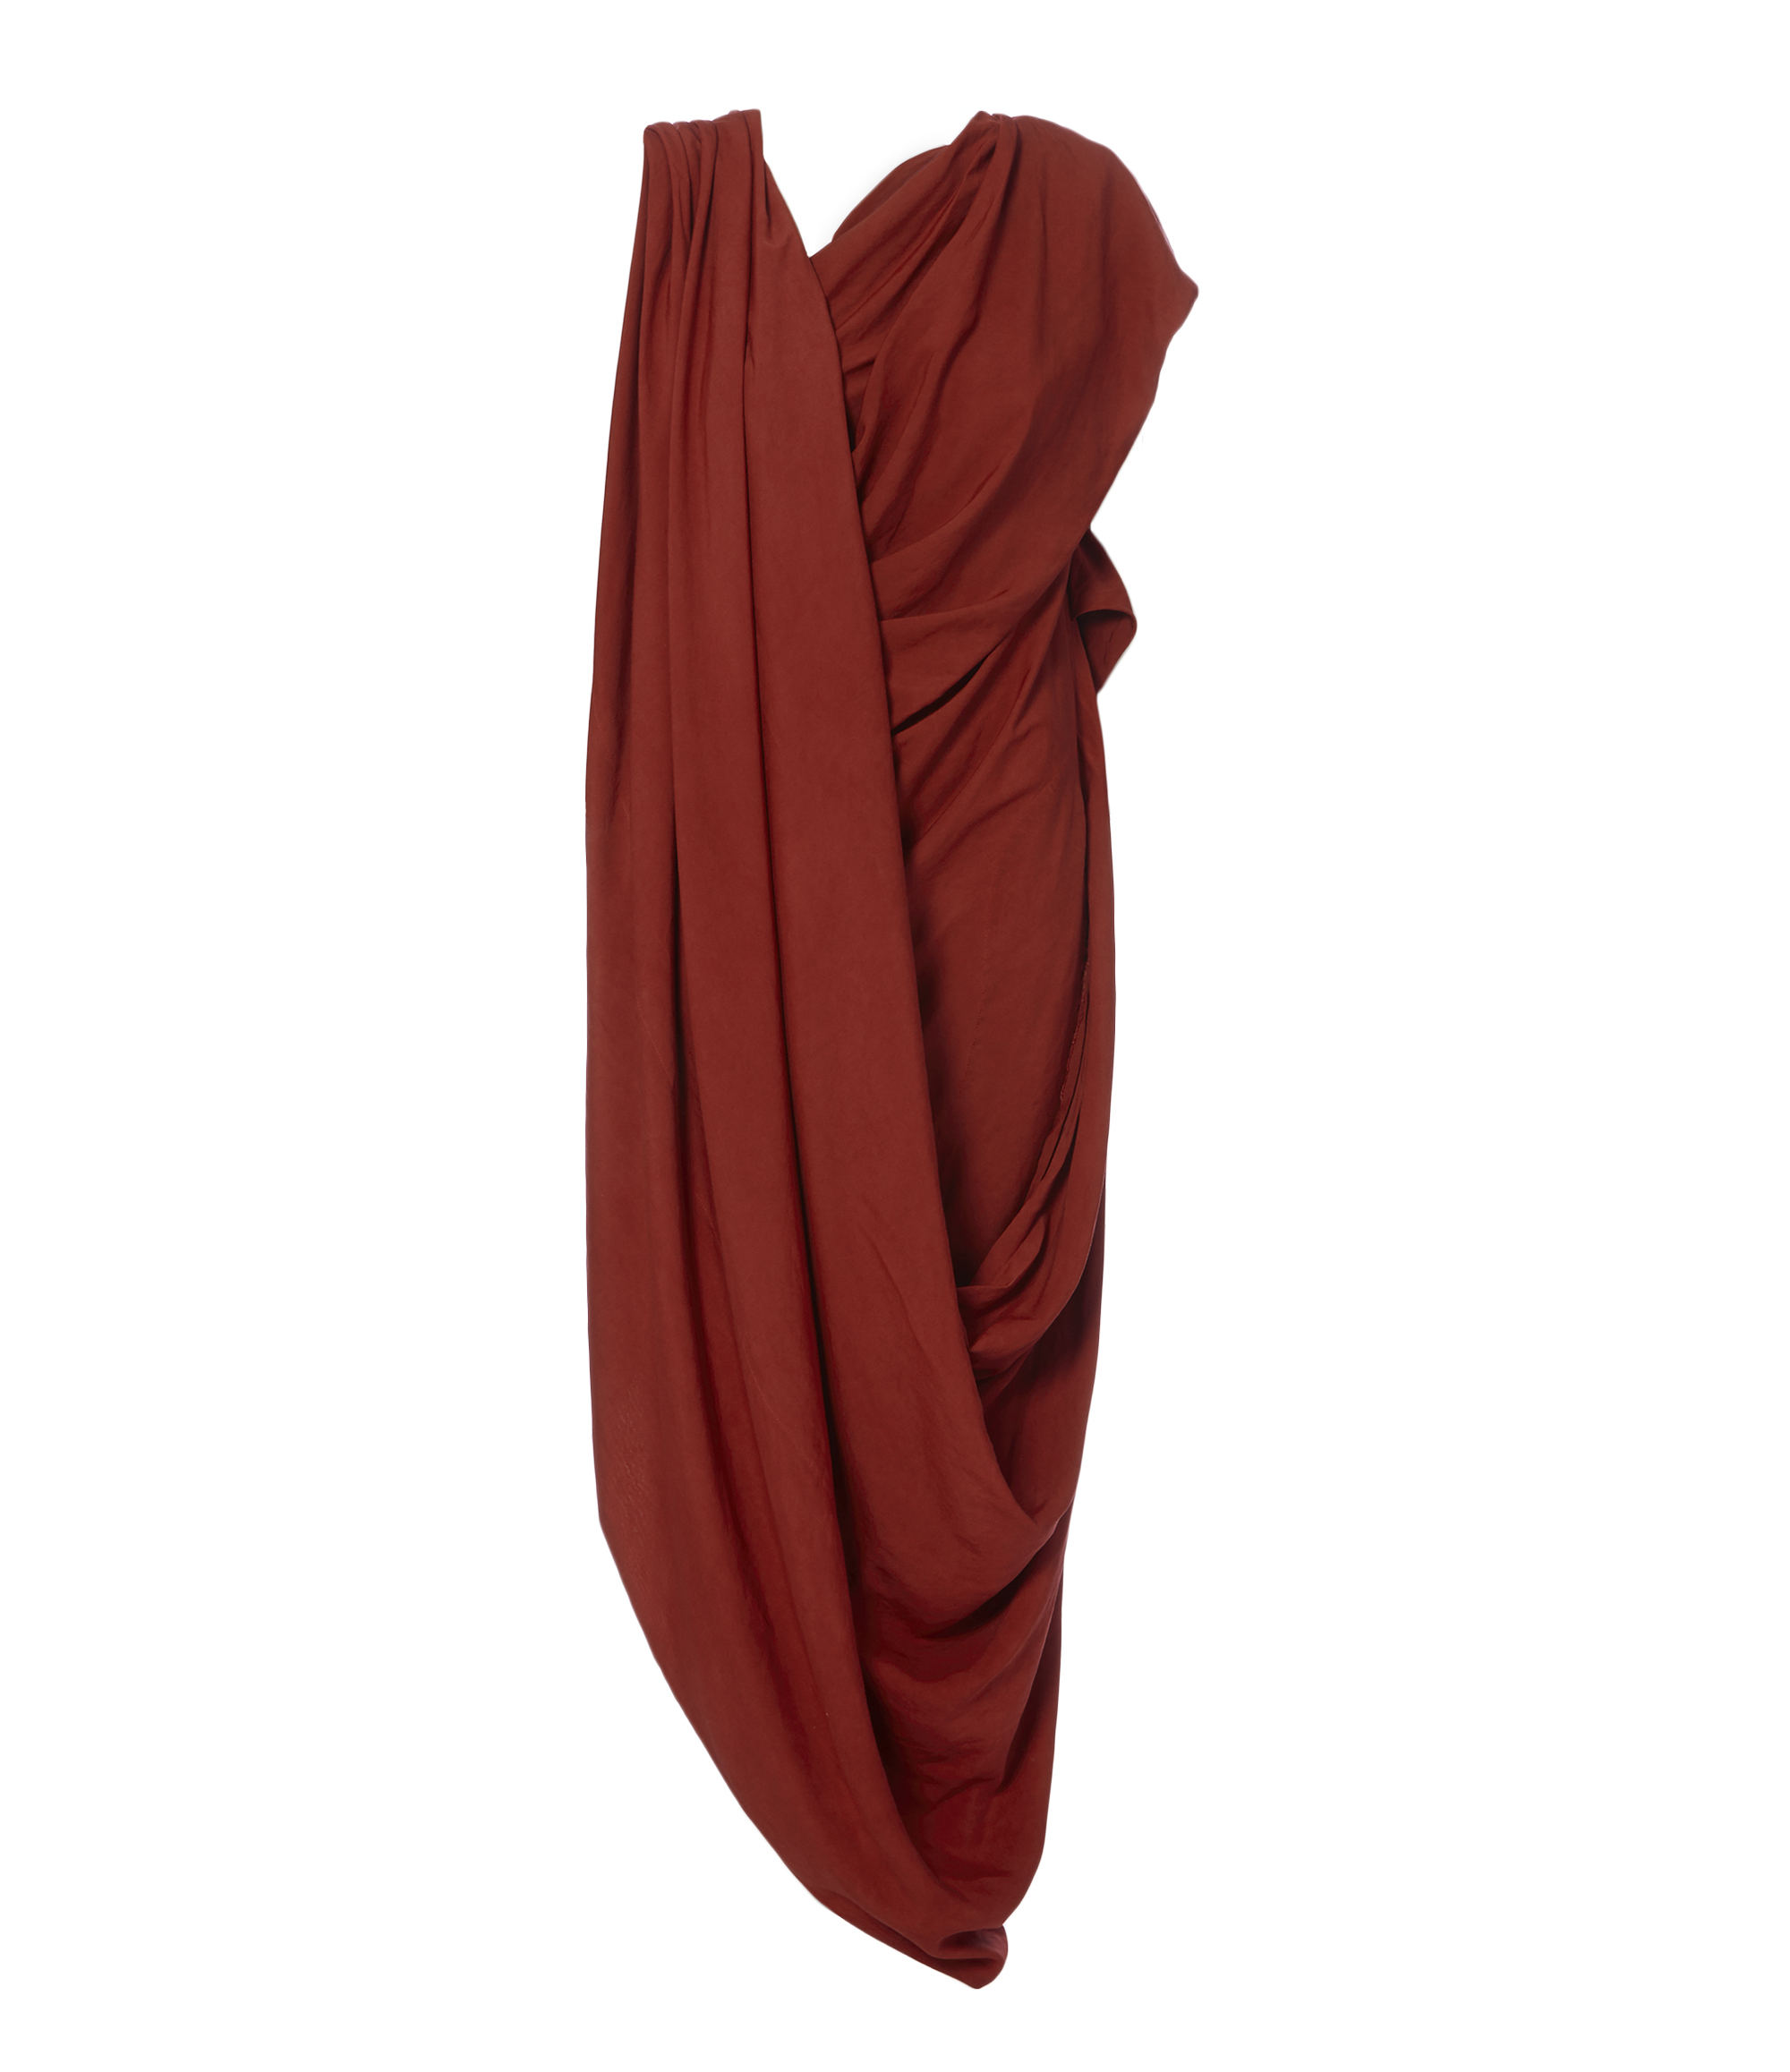 Vivienne Westwood Greek Drape Dress